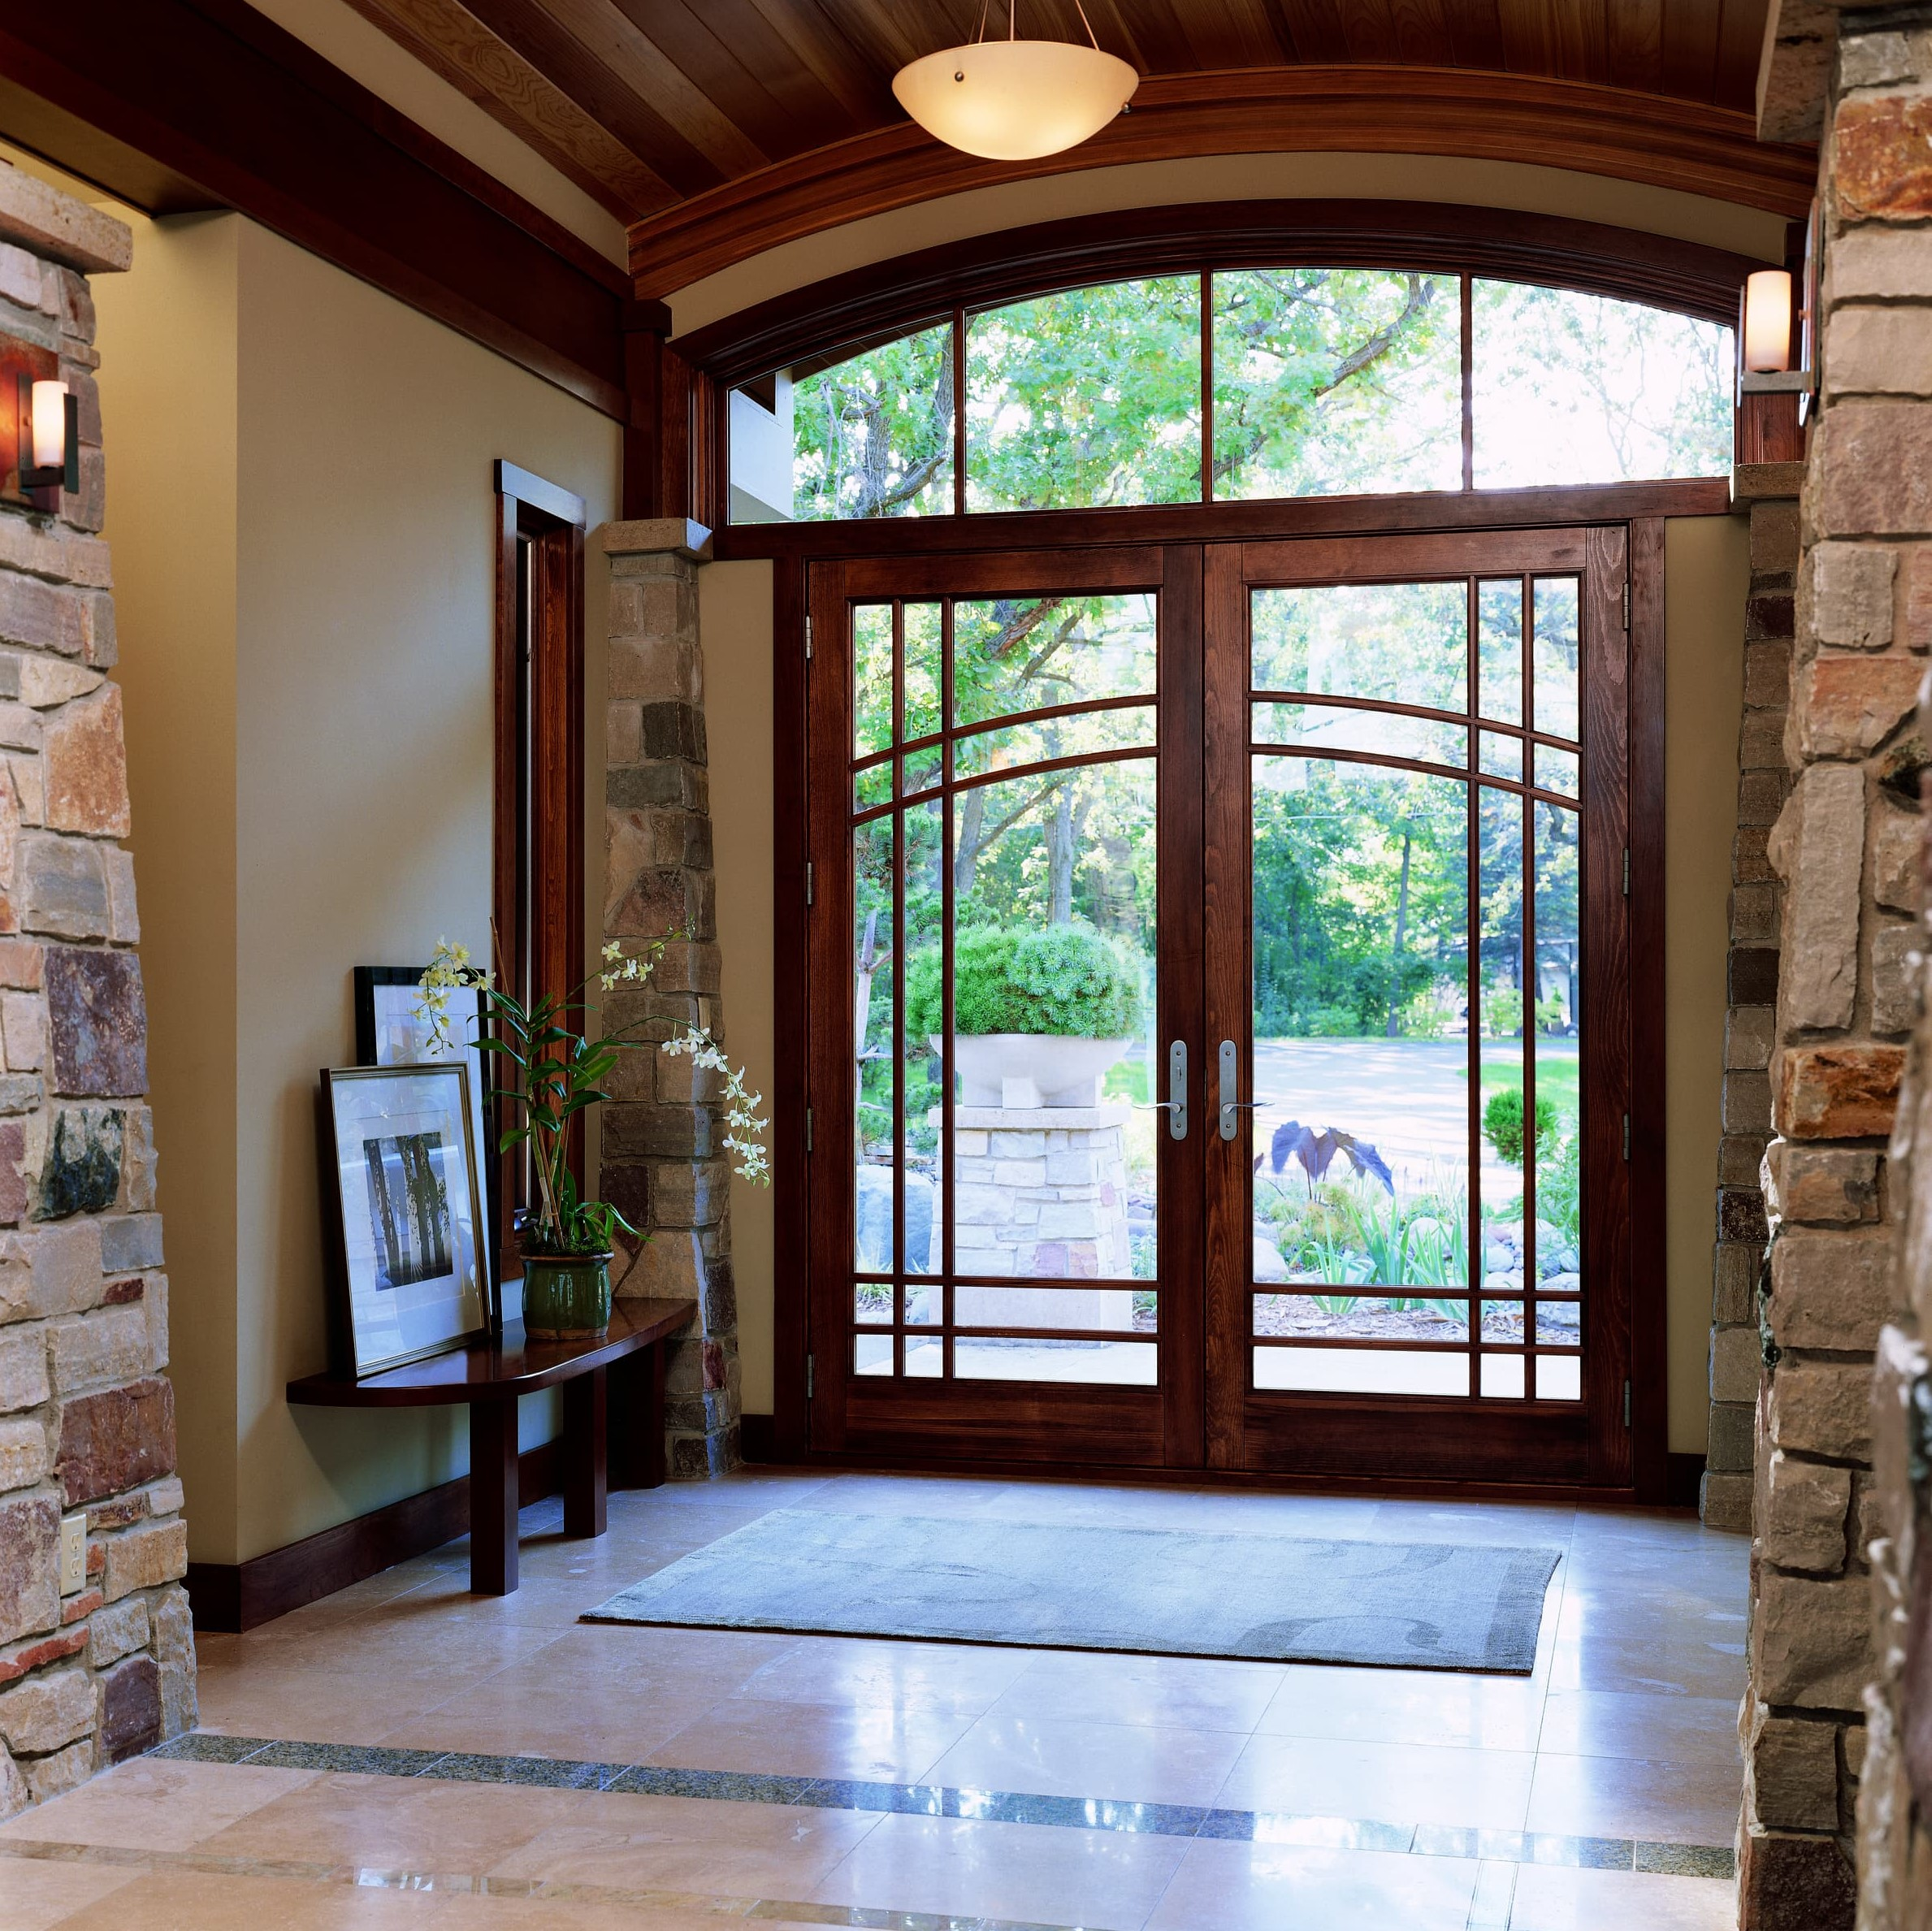 Interior photo of wooden swinging patio doors